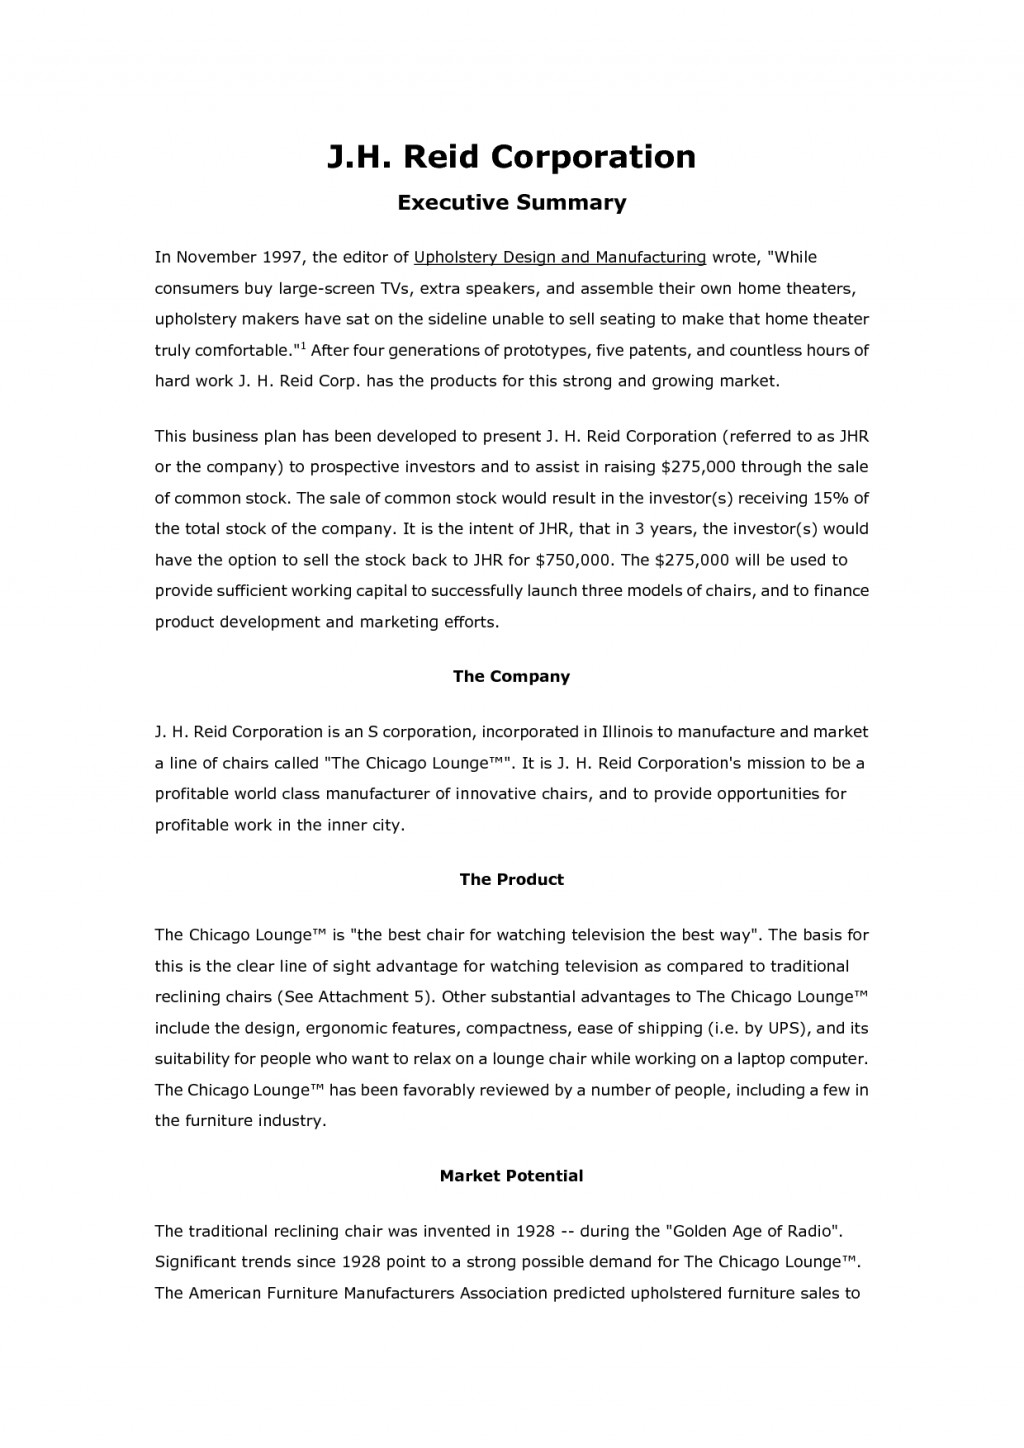 008 Proposal Essays Essay Example Company Writing Reviews Legit Service Business Plan S Reddit Are There Any Services Uk Awesome Modest Examples On Bullying Large